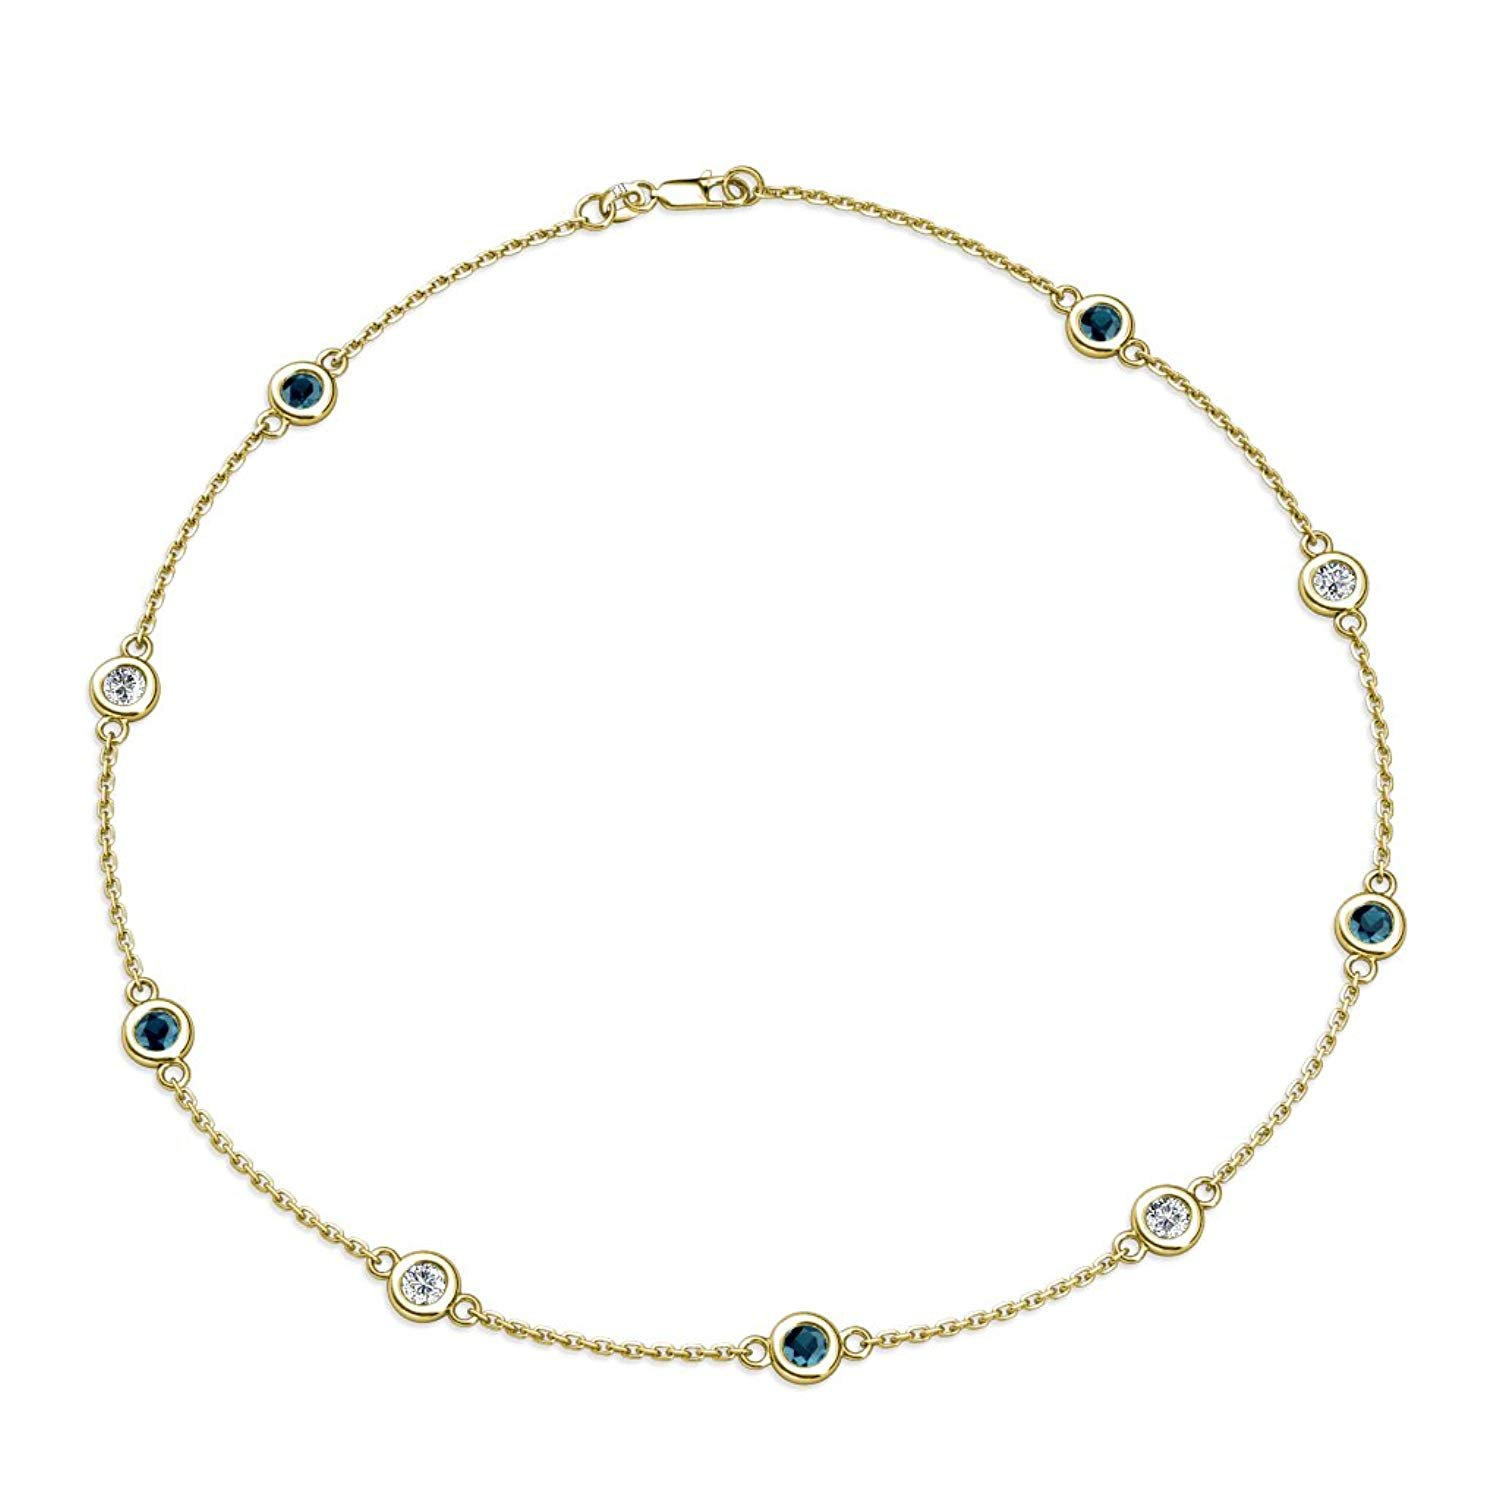 Blue and White Diamond (SI2-I1, G-H) 9 Station Necklace 2.25 cttw in 14K Yellow Gold by TriJewels